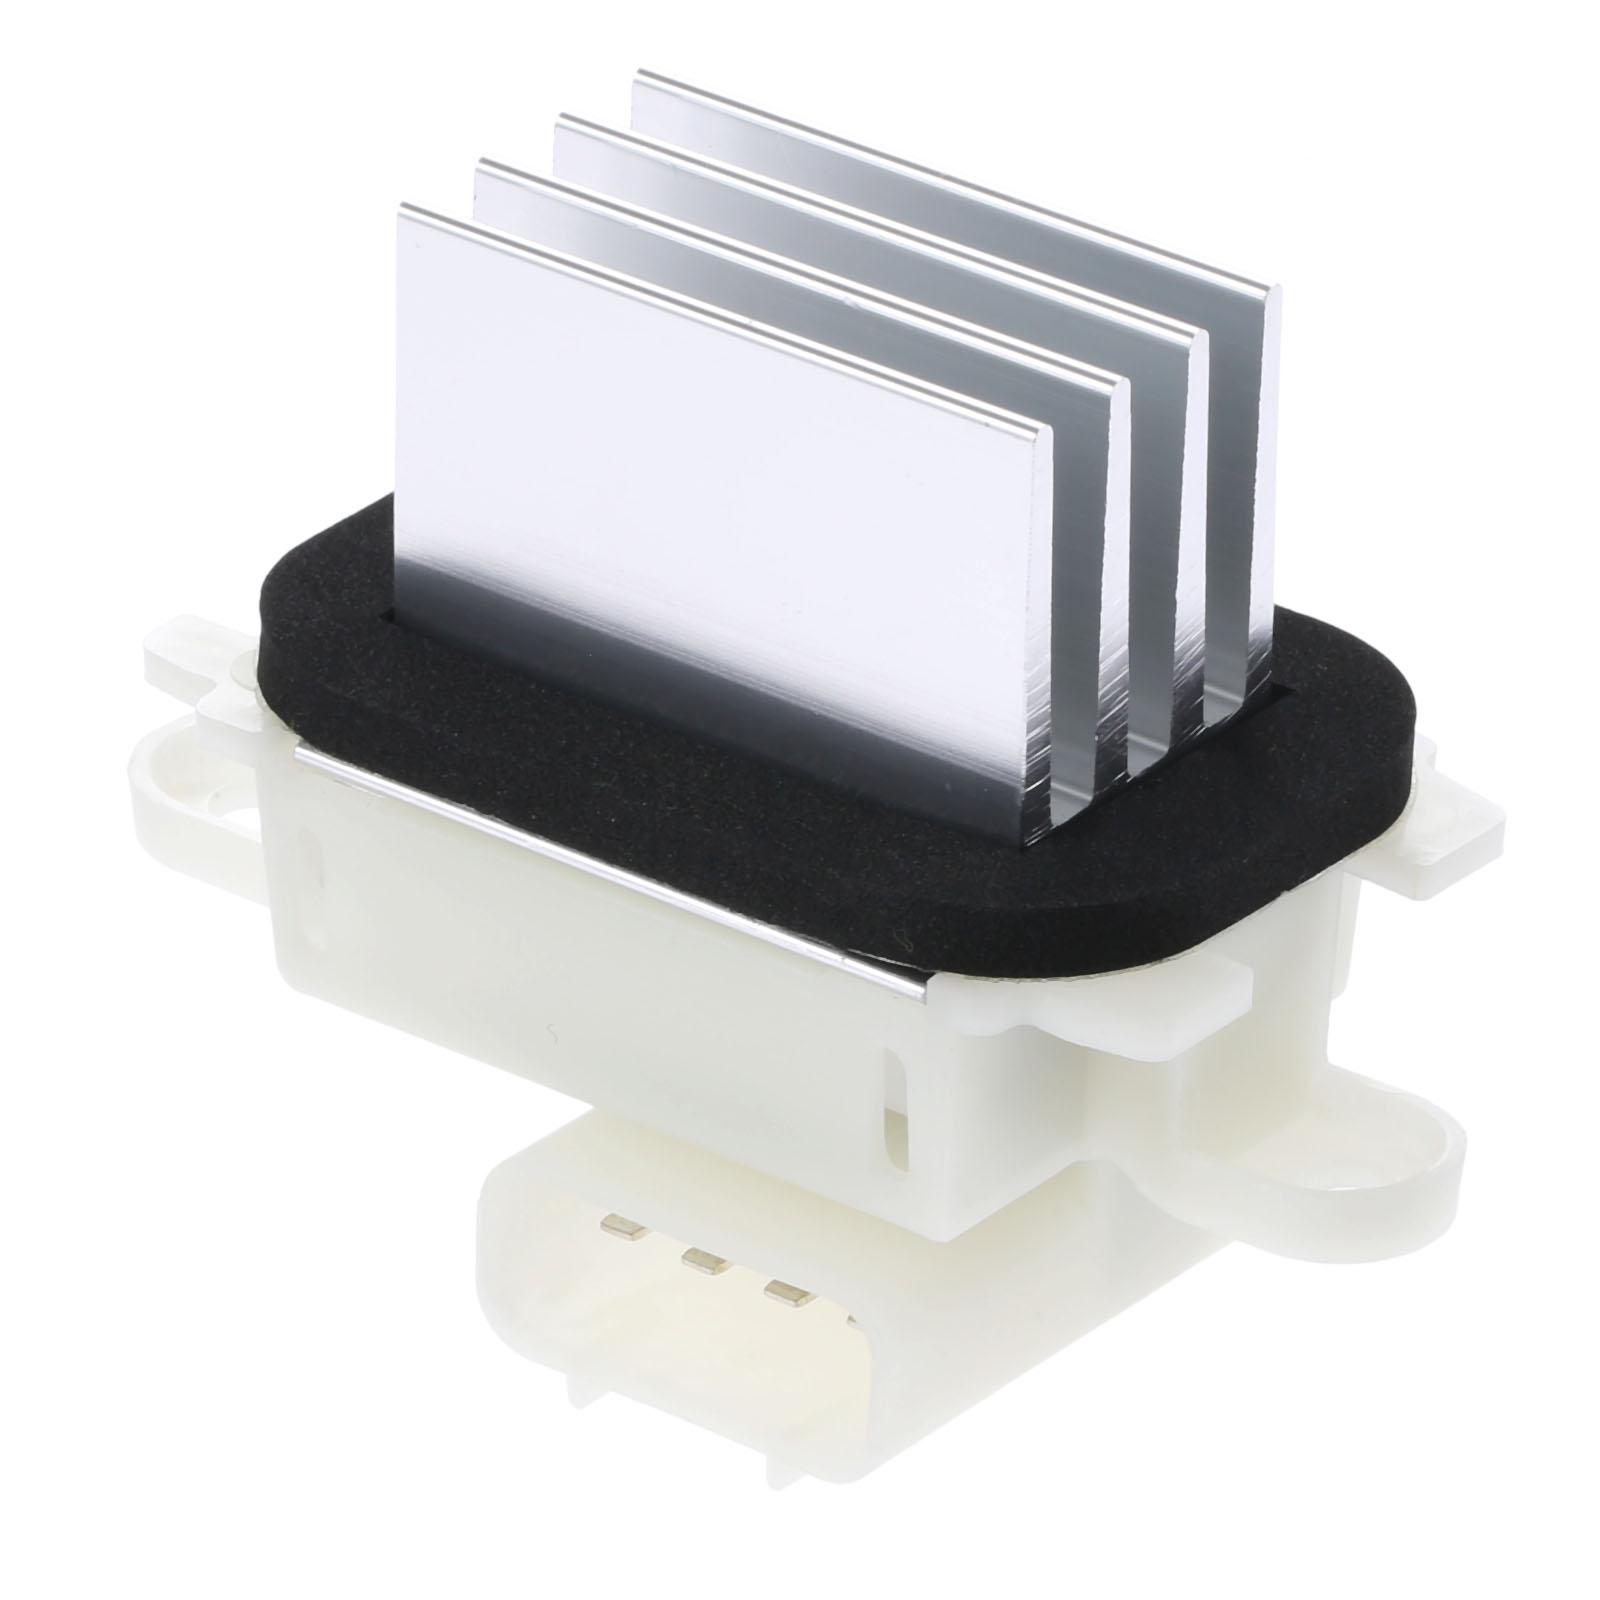 BL3Z-19E624-A Auto A/C Heater Blower Motor Resistor BL3Z19E624A YH1829 YH-1829 RU893 For Ford Lincoln YH1829 Car Accessories